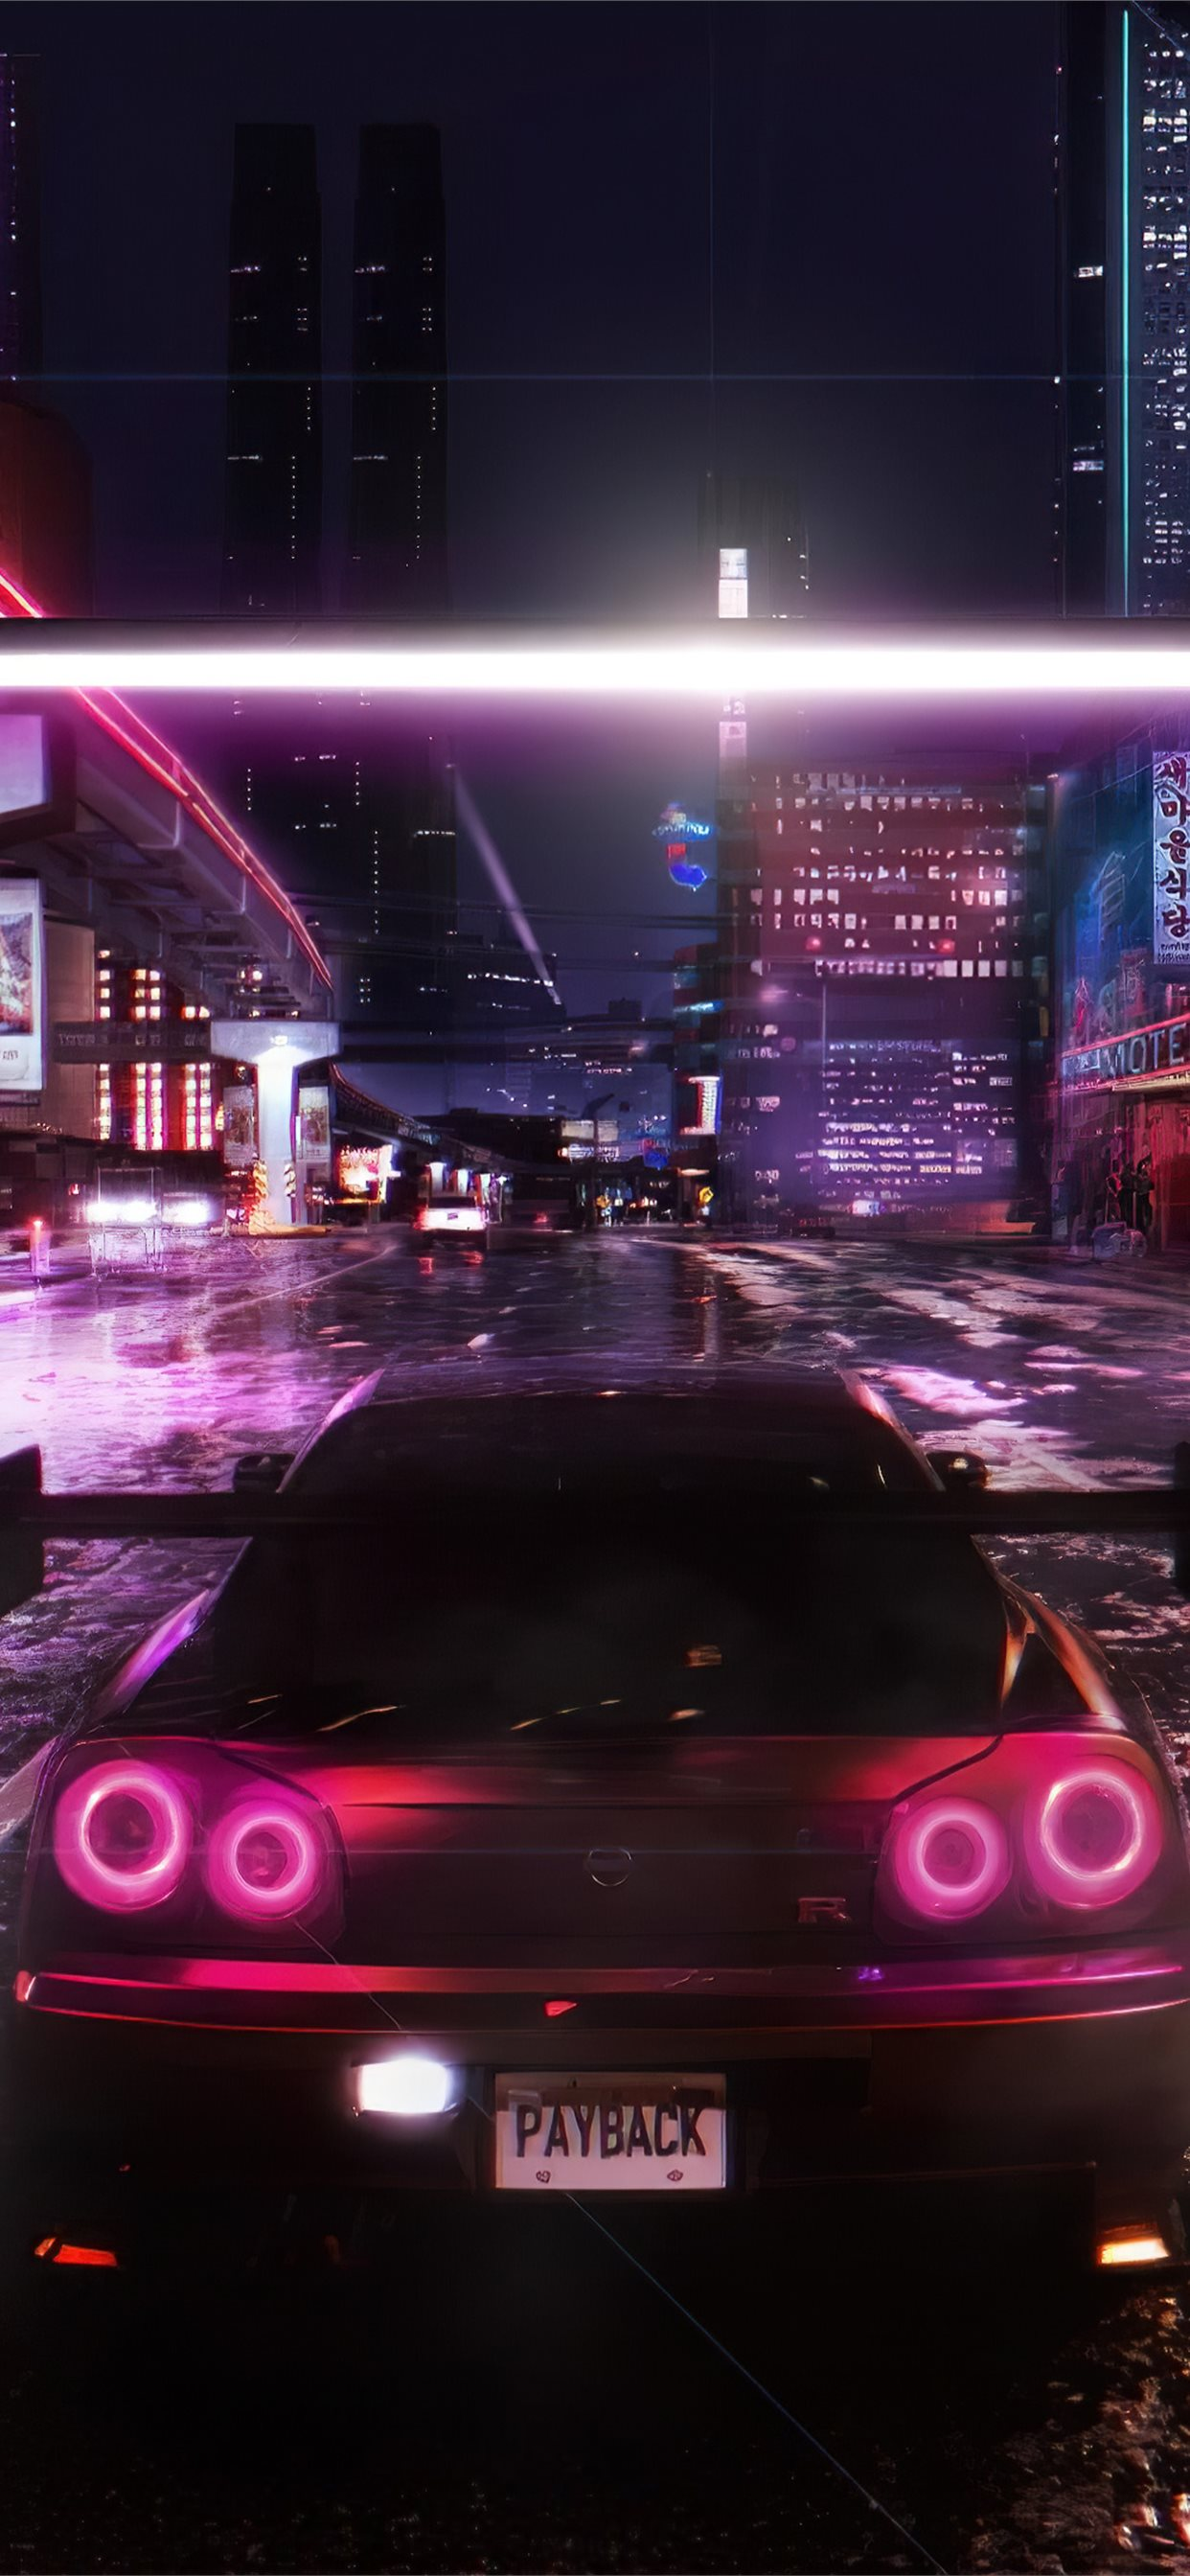 Need For Speed Payback Cyberpunk 4k Iphone X Wallpapers Free Download